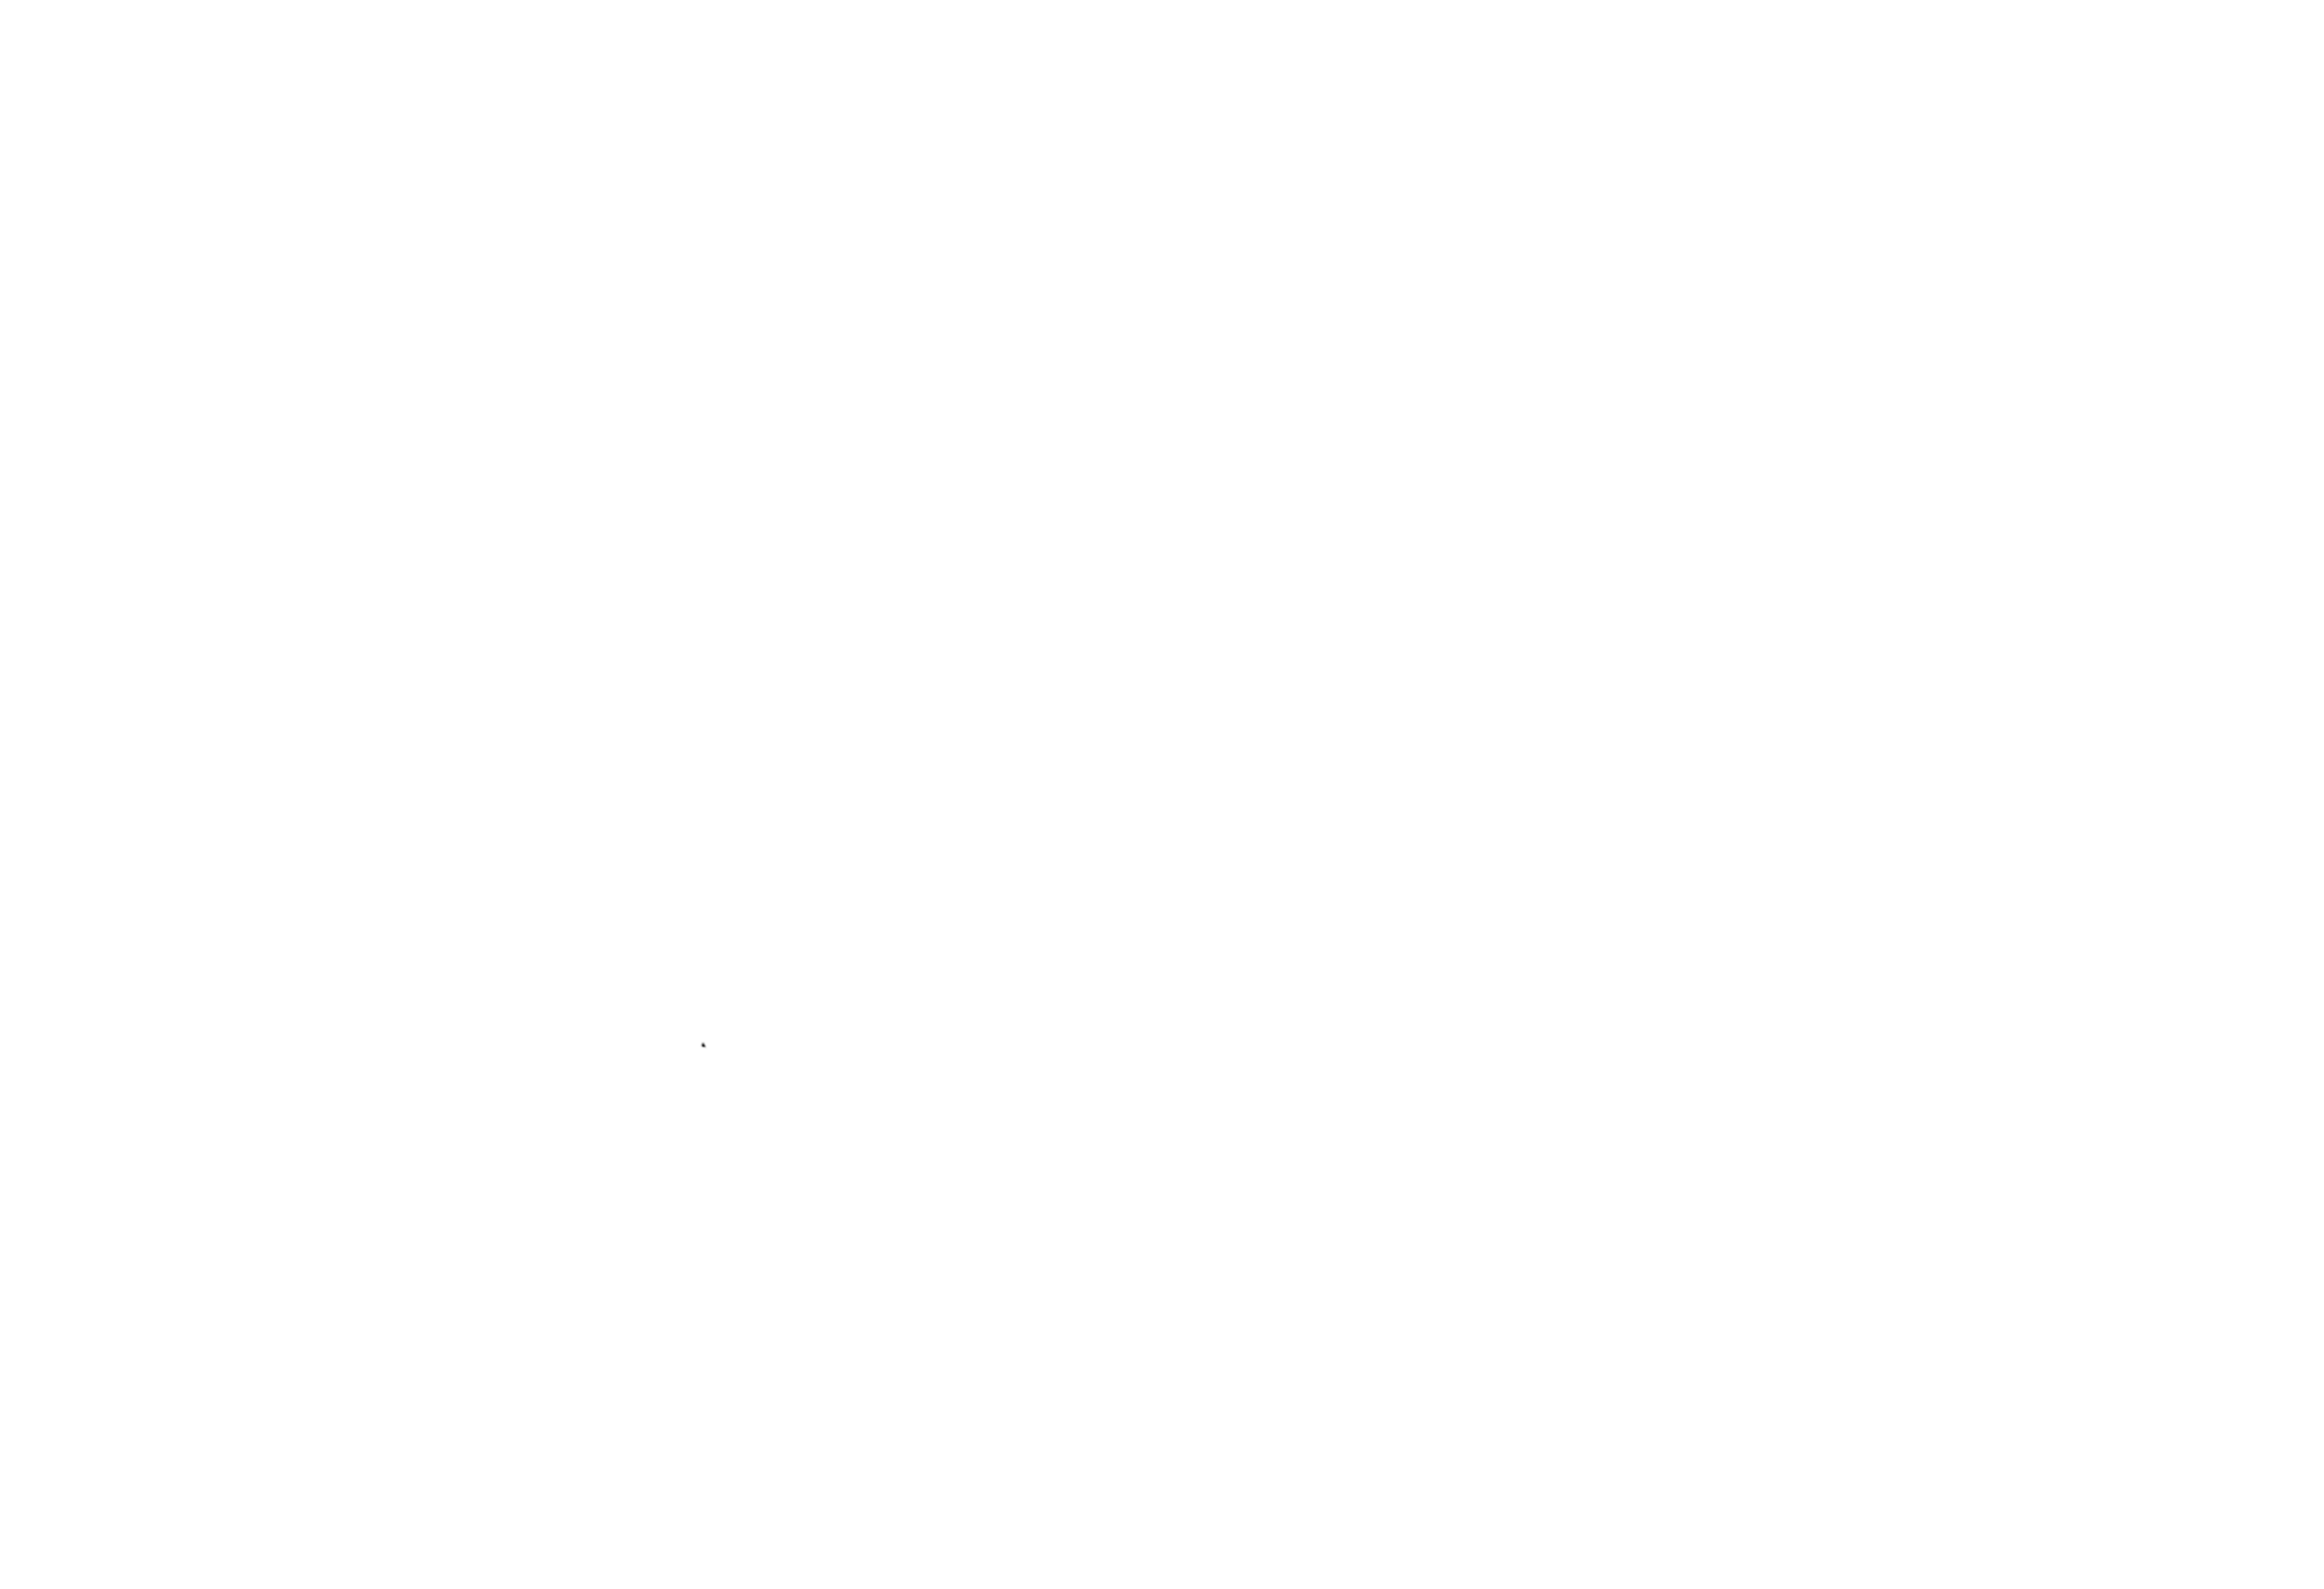 First-Time Filmmaker Sessions 2019 - whi